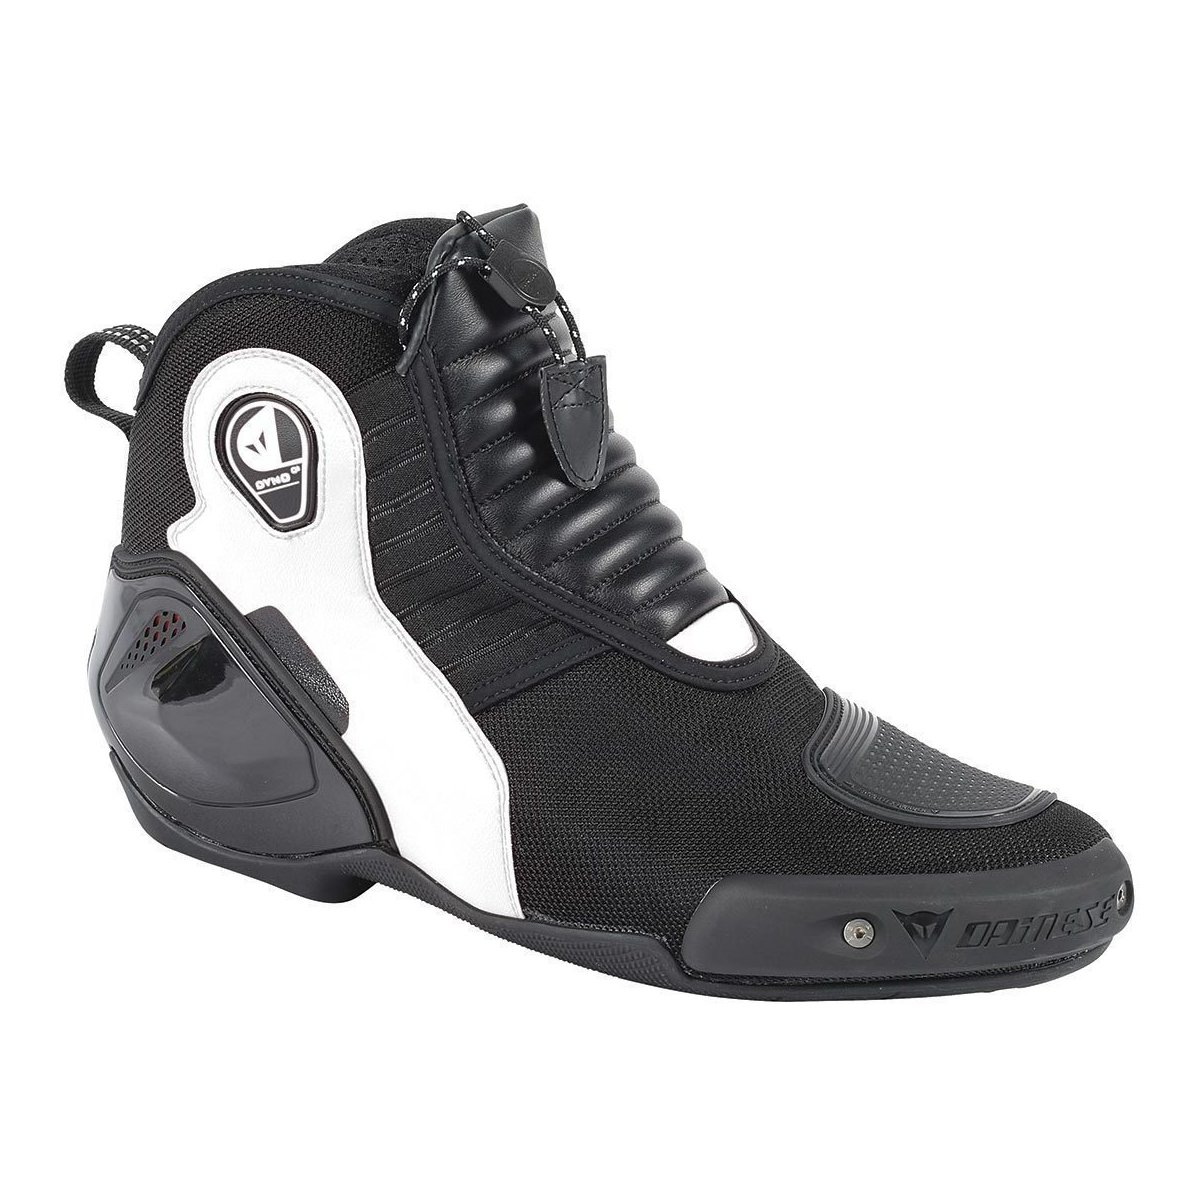 Details about Dainese Dyno D1 Womens Motorcycle Shoes BlackWhiteAnthracite